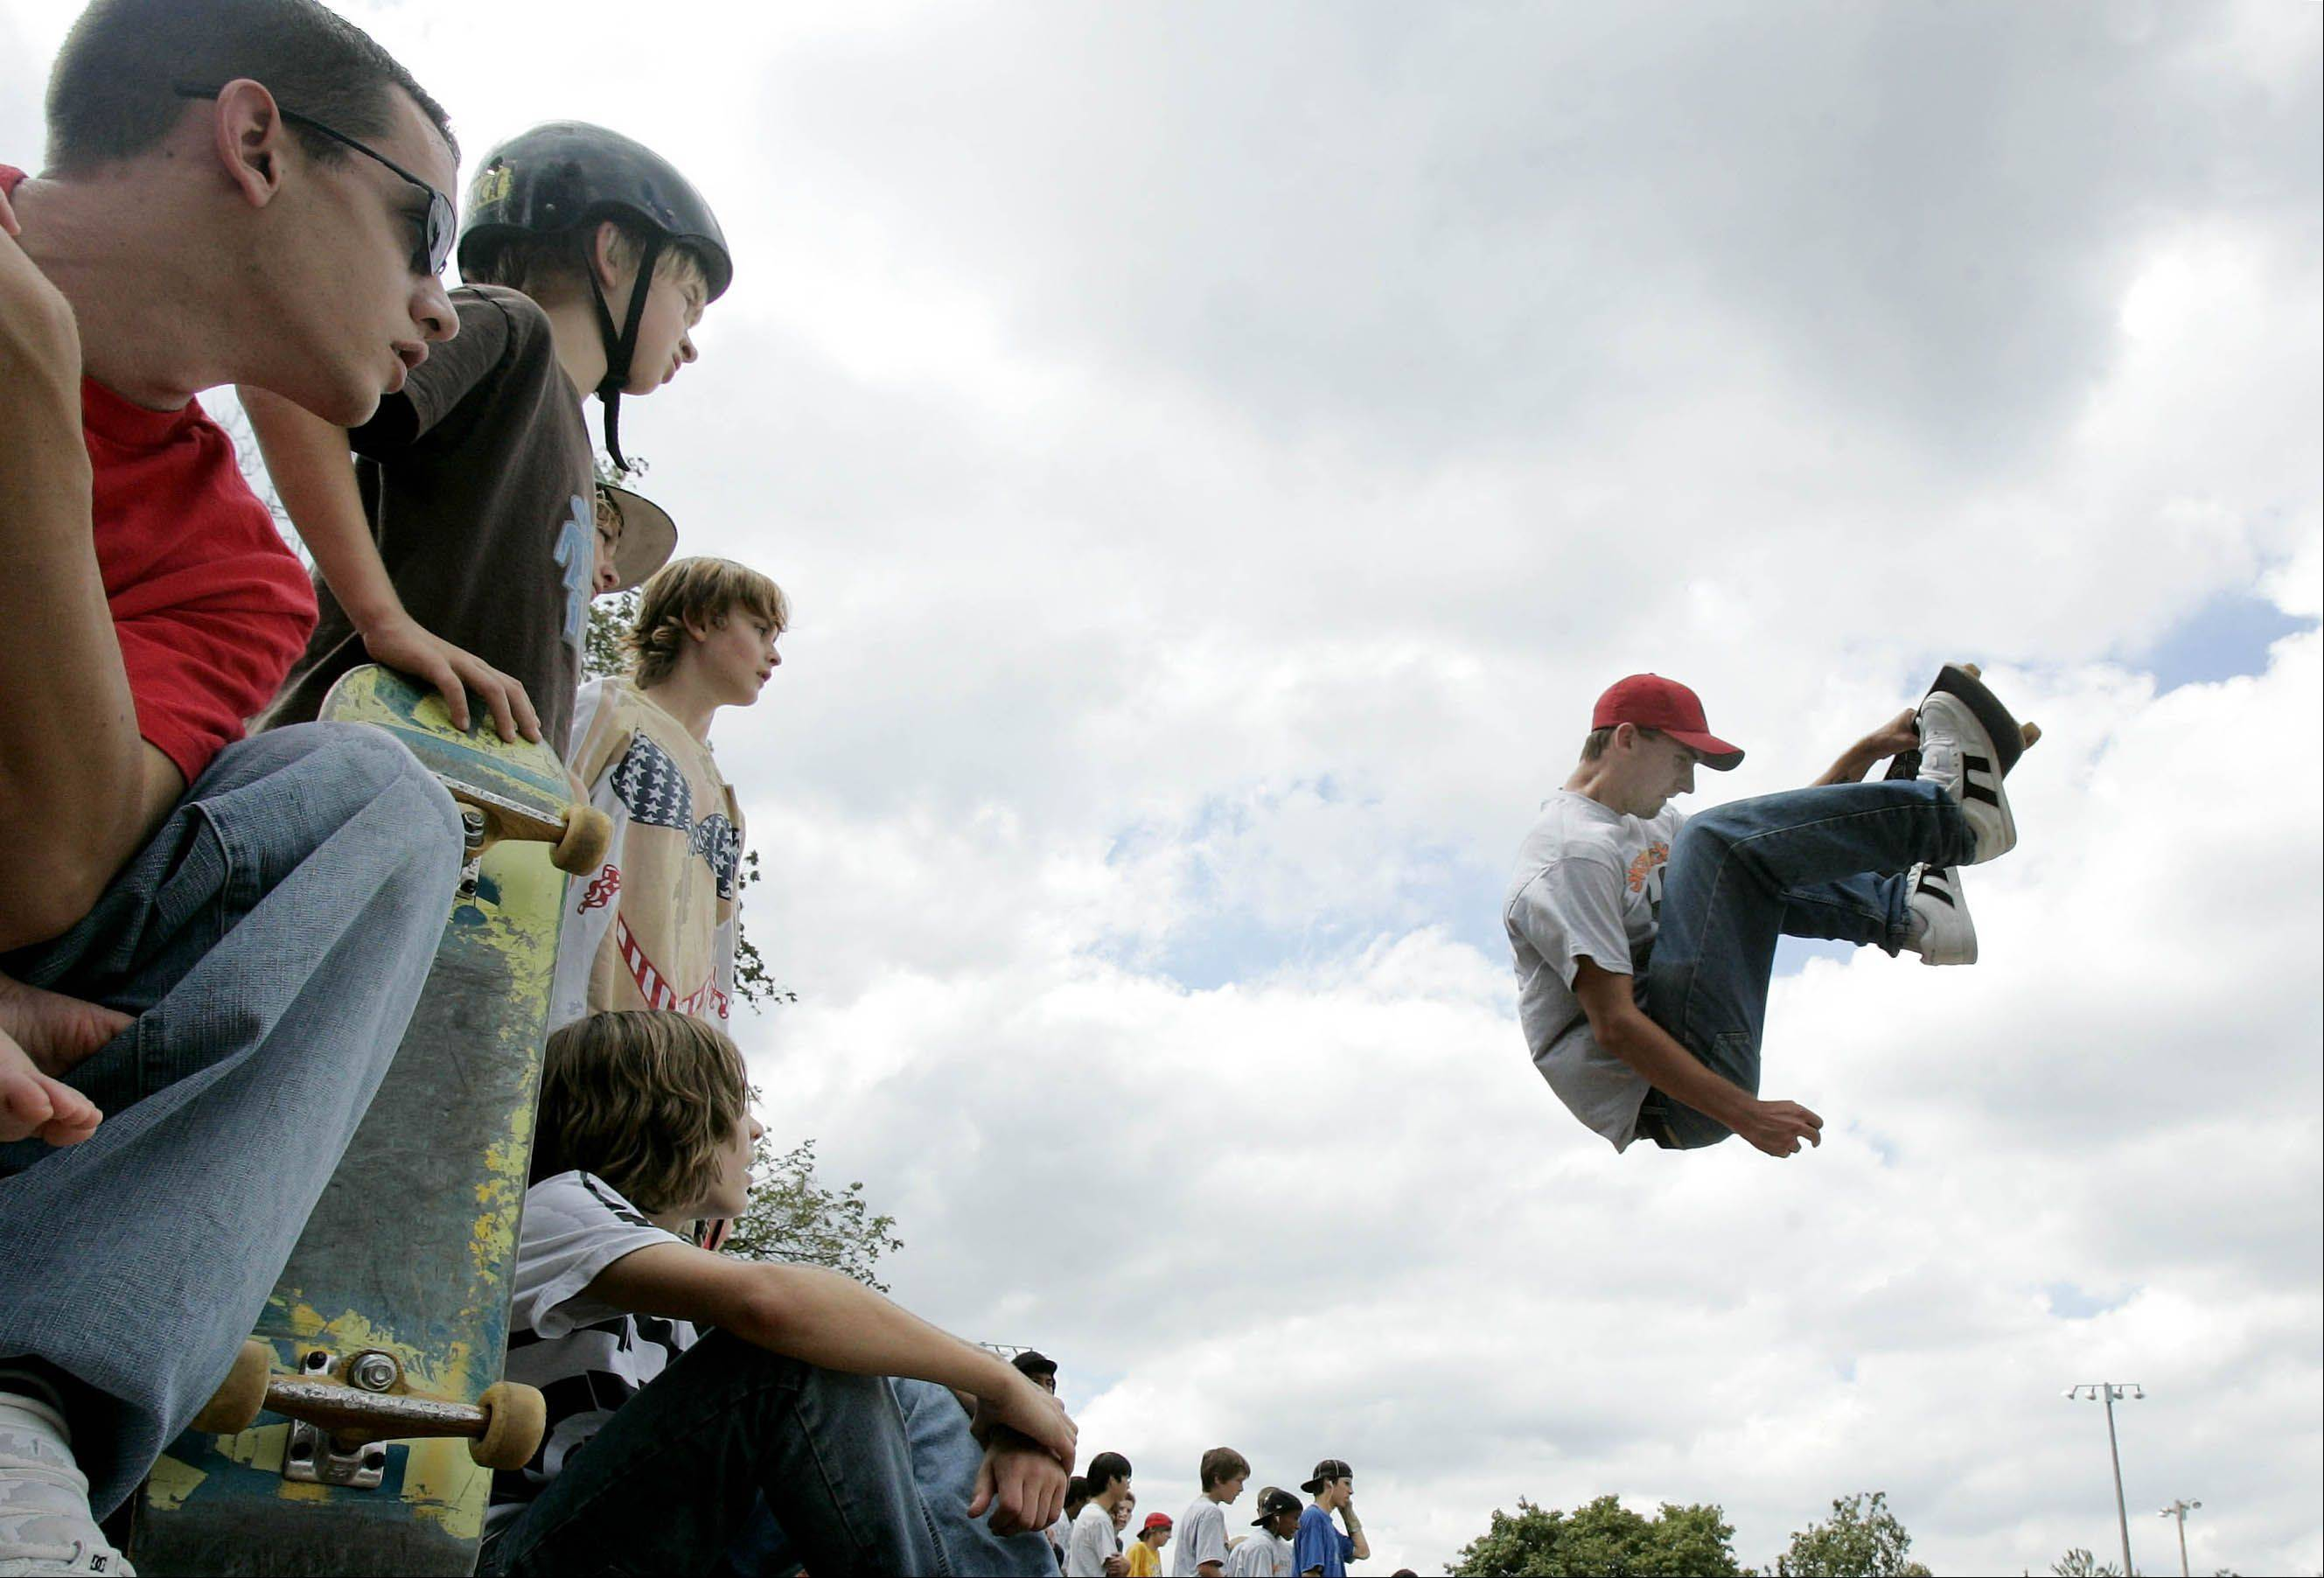 The annual Last Fling Skaters Picnic brings Naperville area skateboarders and police officers together for tricks, prizes and eating contests featuring pie and doughnuts. This year�s picnic is scheduled for 11 a.m. to 2 p.m. Saturday, Aug. 31, at the Centennial Beach Skate Park, 500 W. Jackson Ave., Naperville.